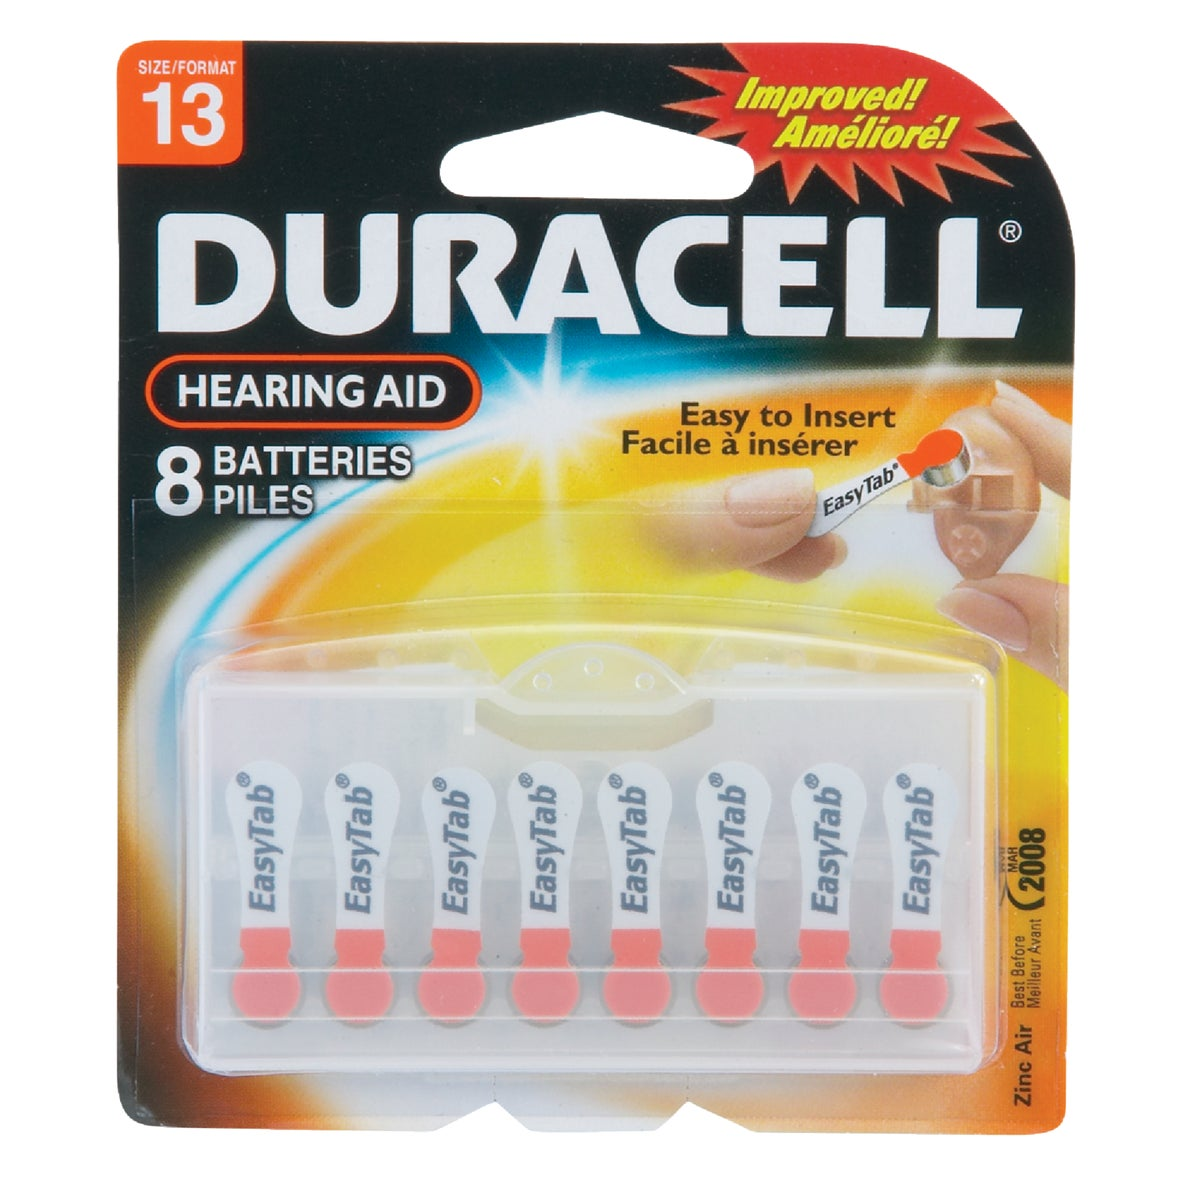 DA13 1.4V HR AID BATTERY - 74087 by P & G  Duracell